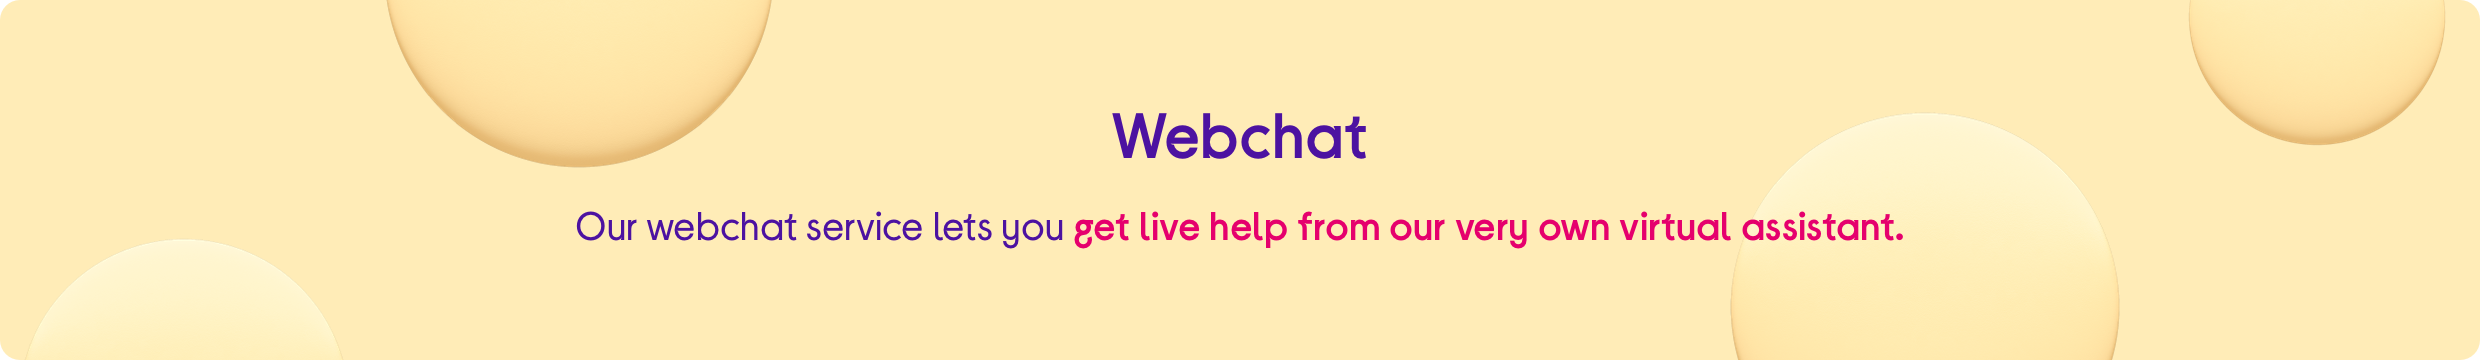 Web chat. Get live help.